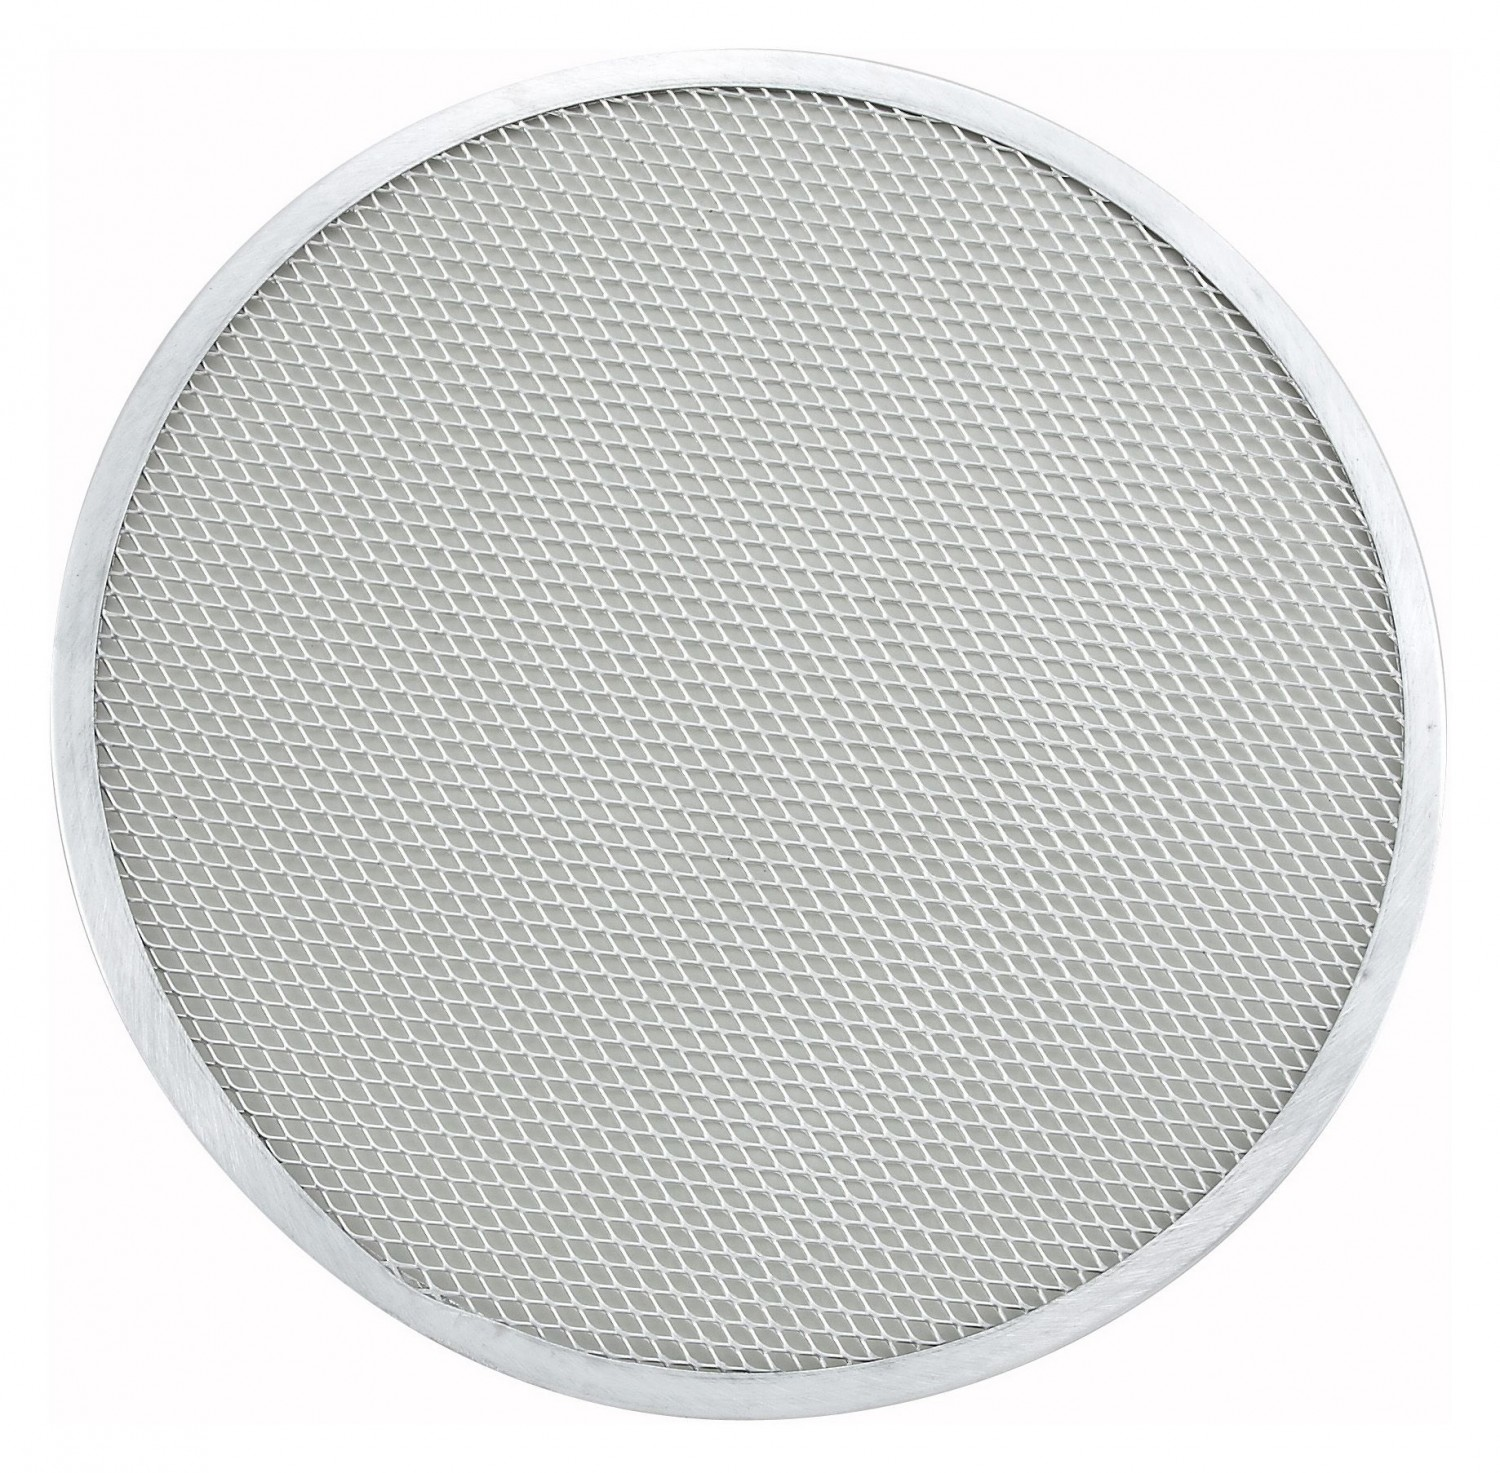 Winco APZS-12 Aluminum Seamless Pizza Screen 12""